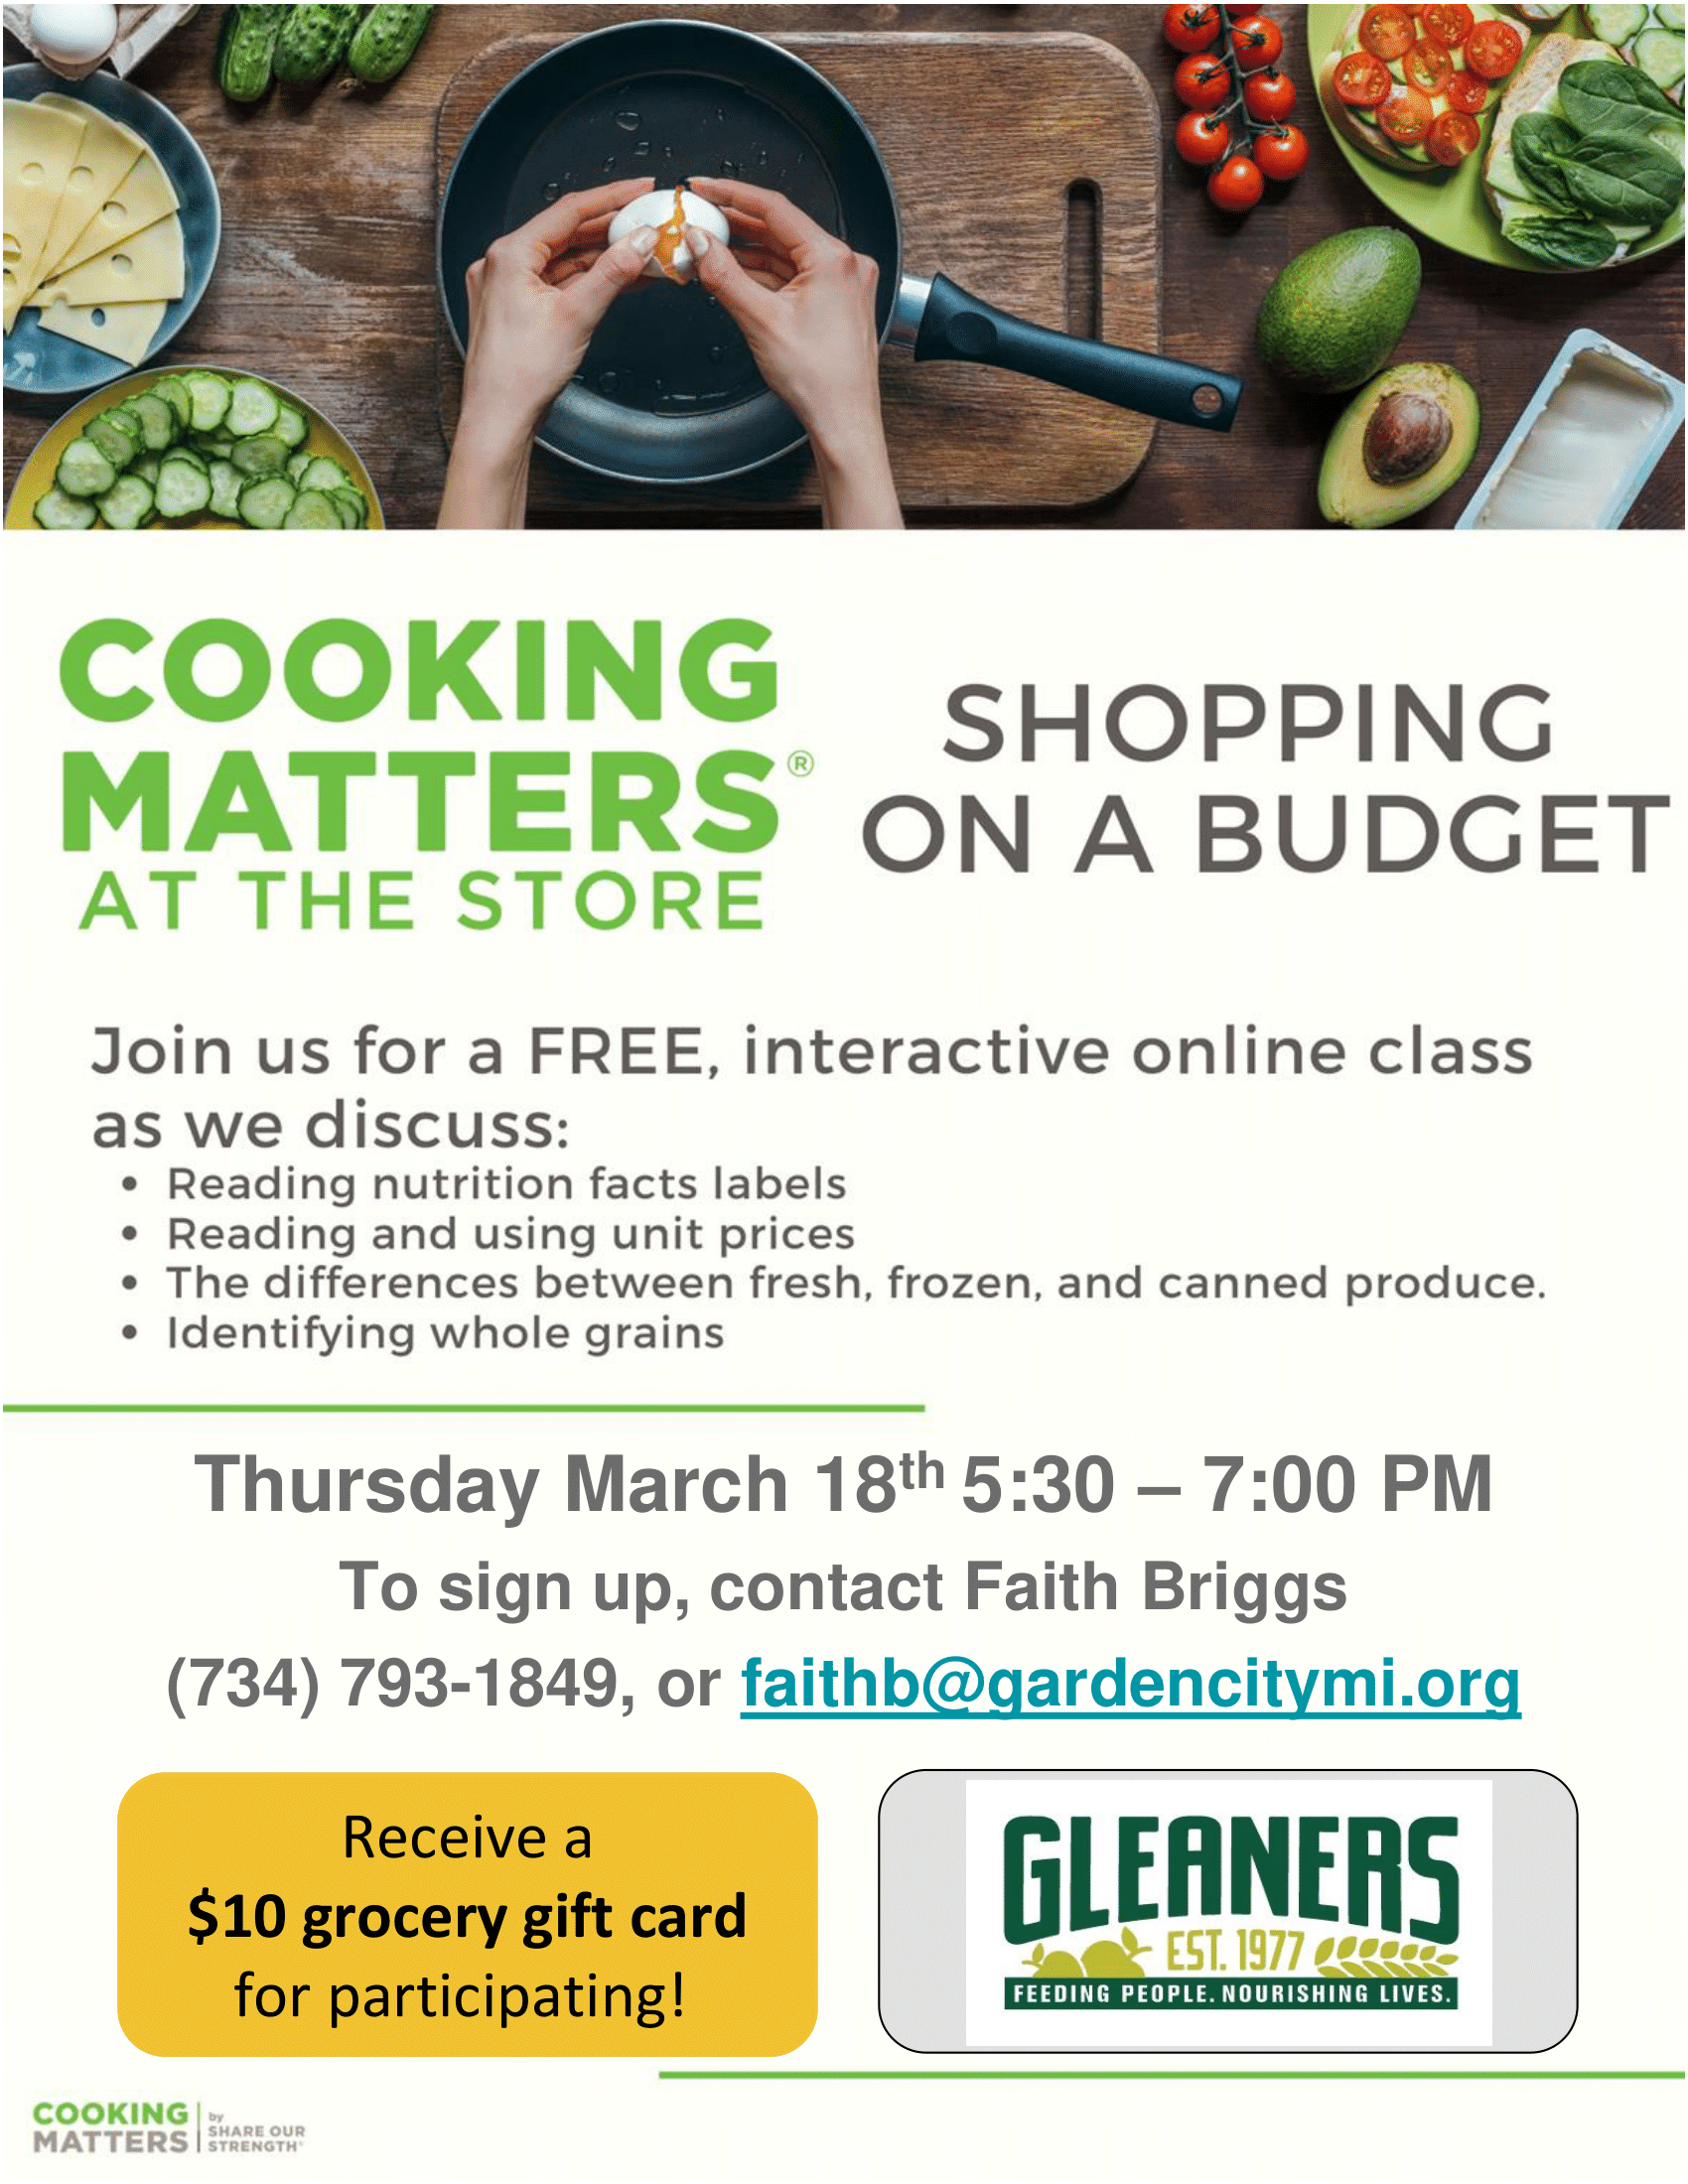 Cooking Matters at the Store FREE